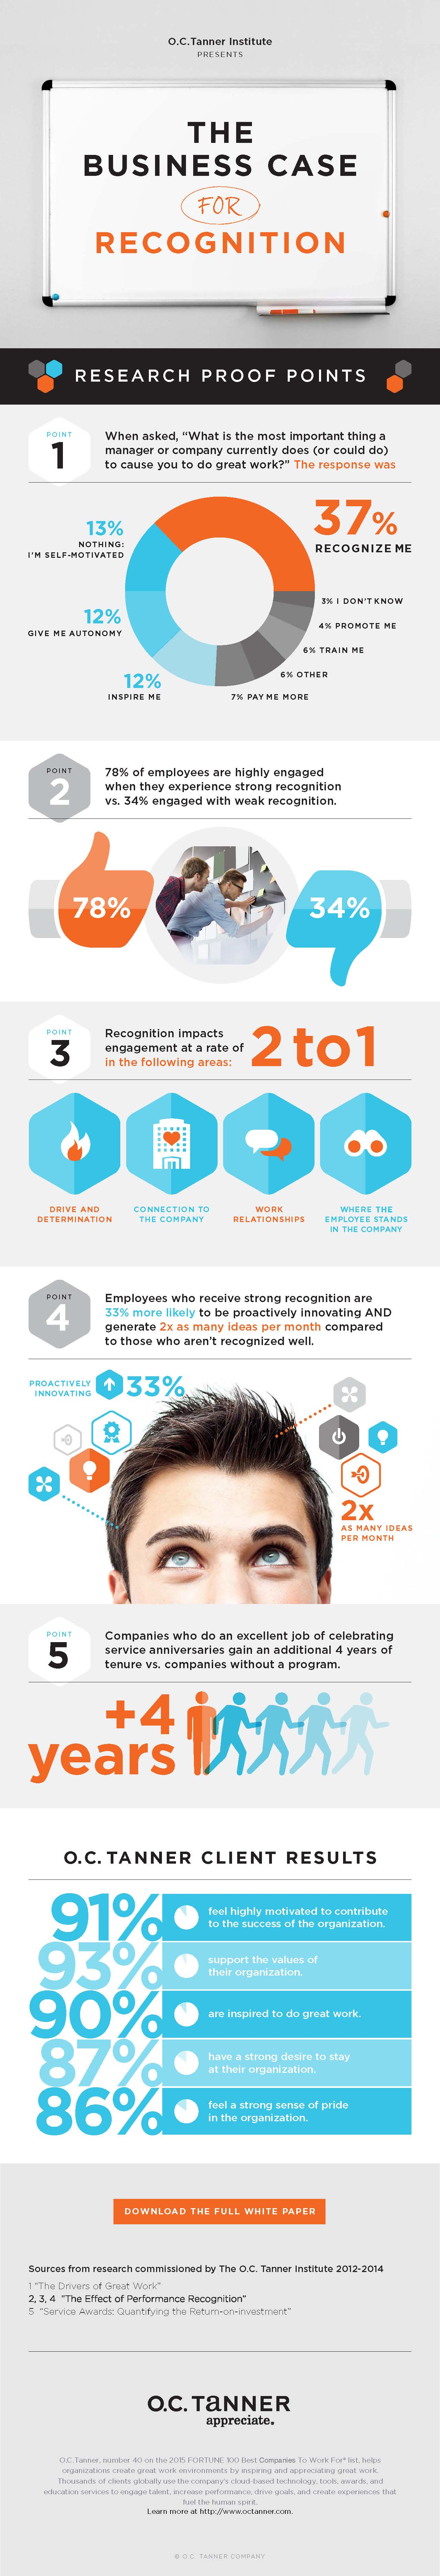 Infographic-Business-Case-for-Recognition.jpg